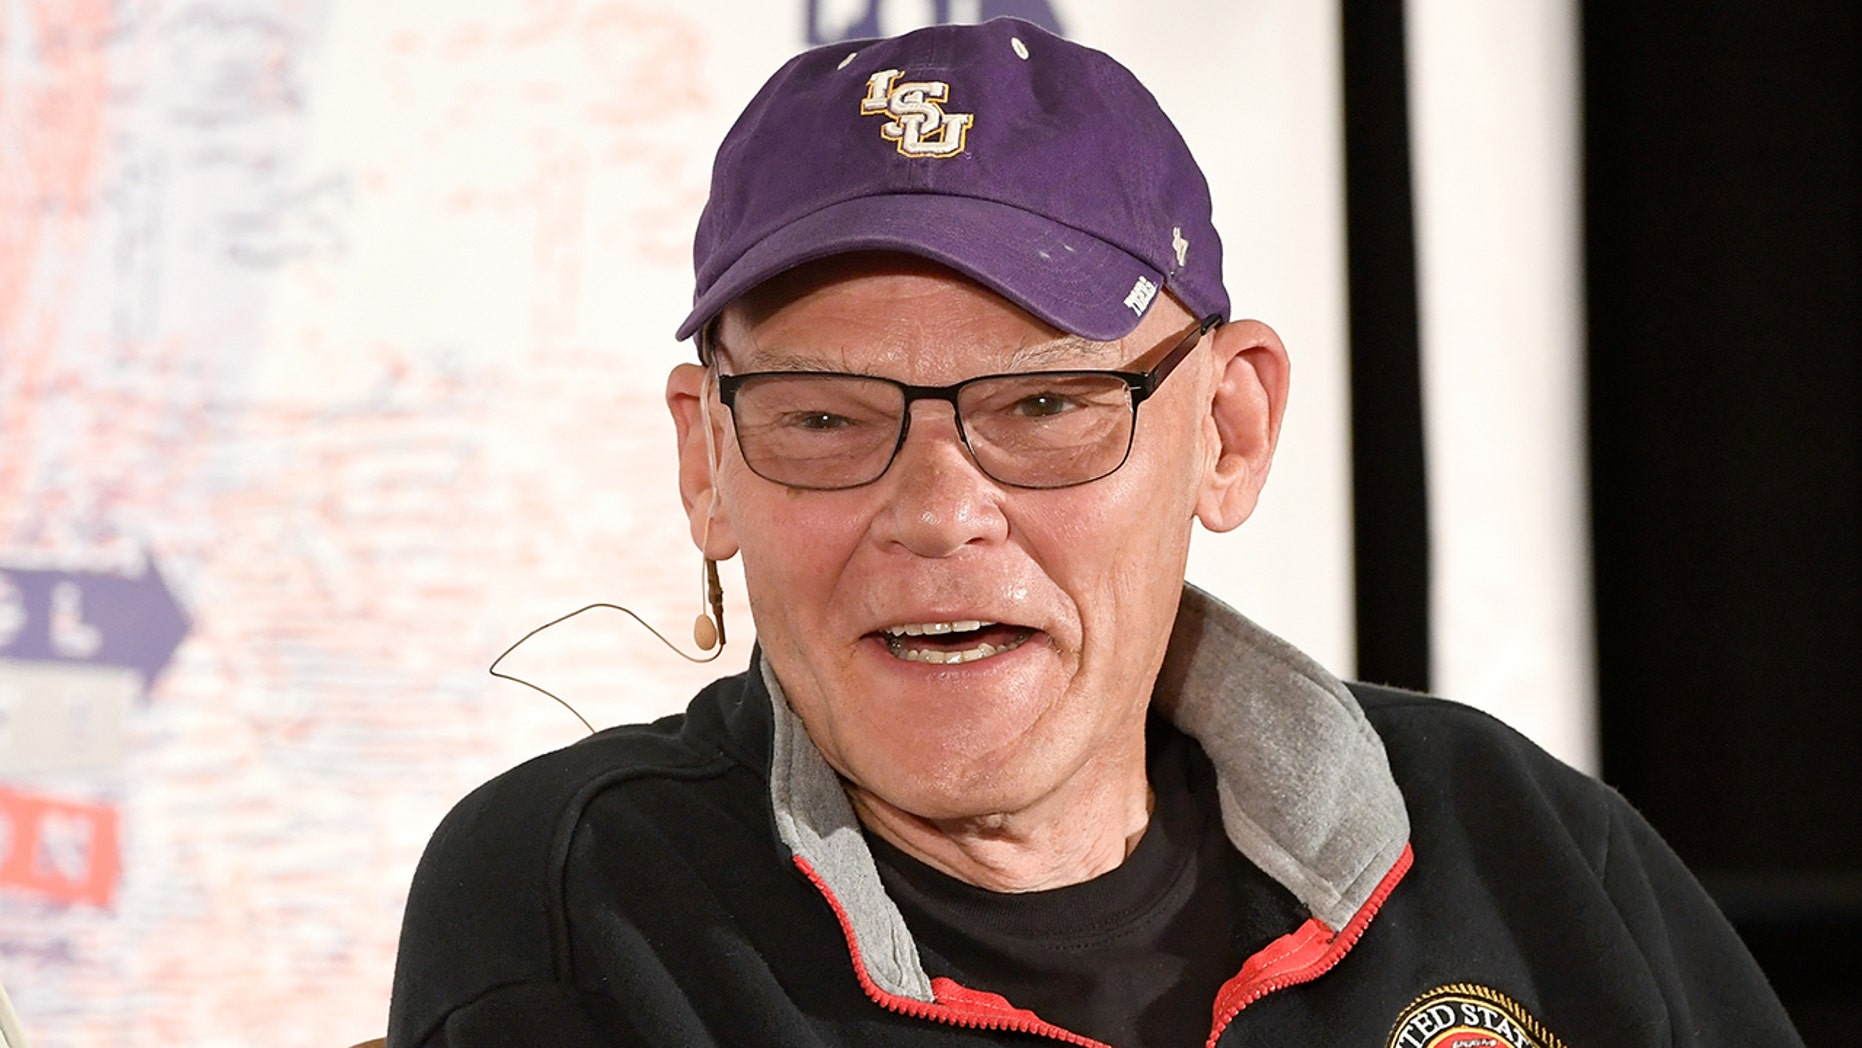 James Carville, former lead strategist for former President Clinon, slammed ESPN on Saturday for the network's apology about his theory on the SEC.